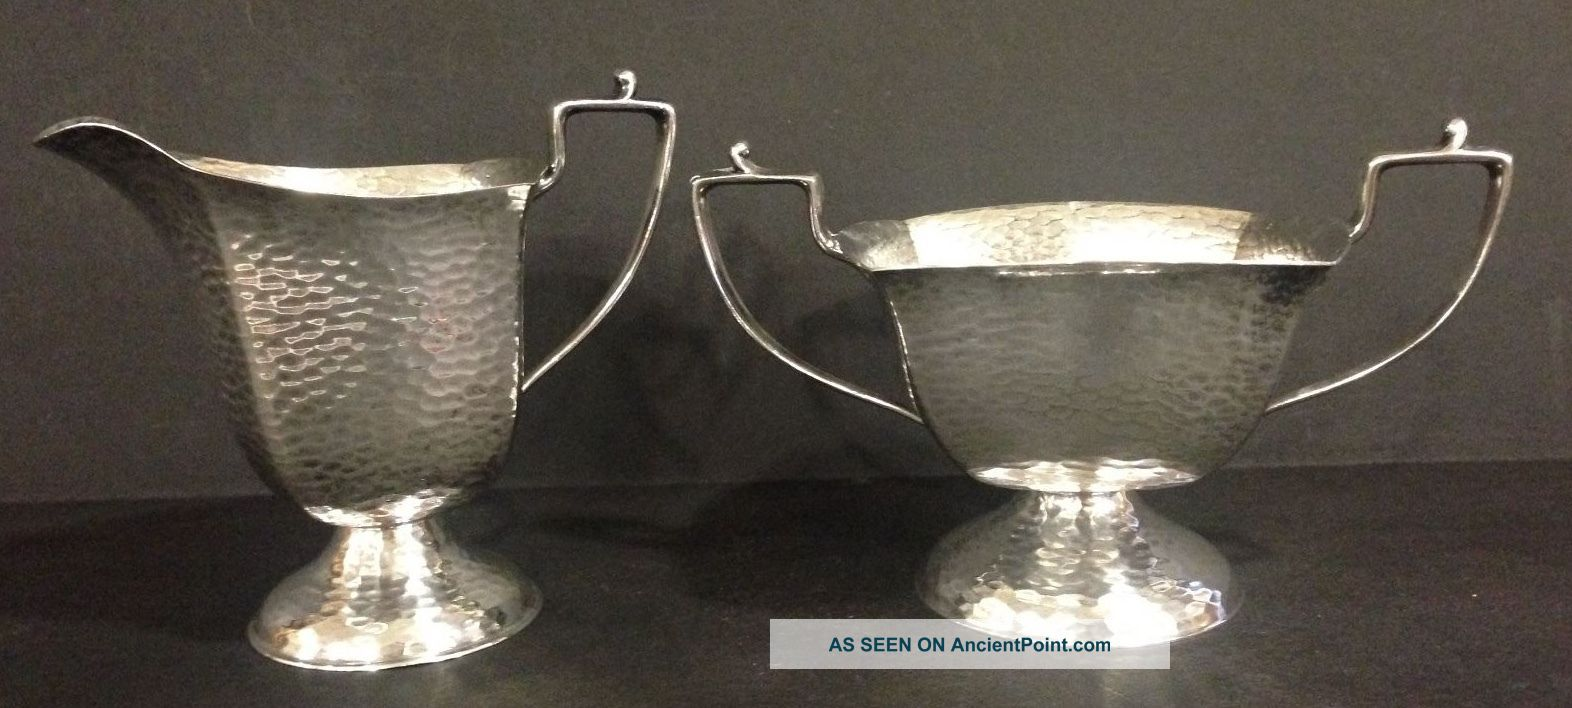 Arts And Crafts Hammered Silver Plate On Nickel Silver Cream And Sugar Creamers & Sugar Bowls photo